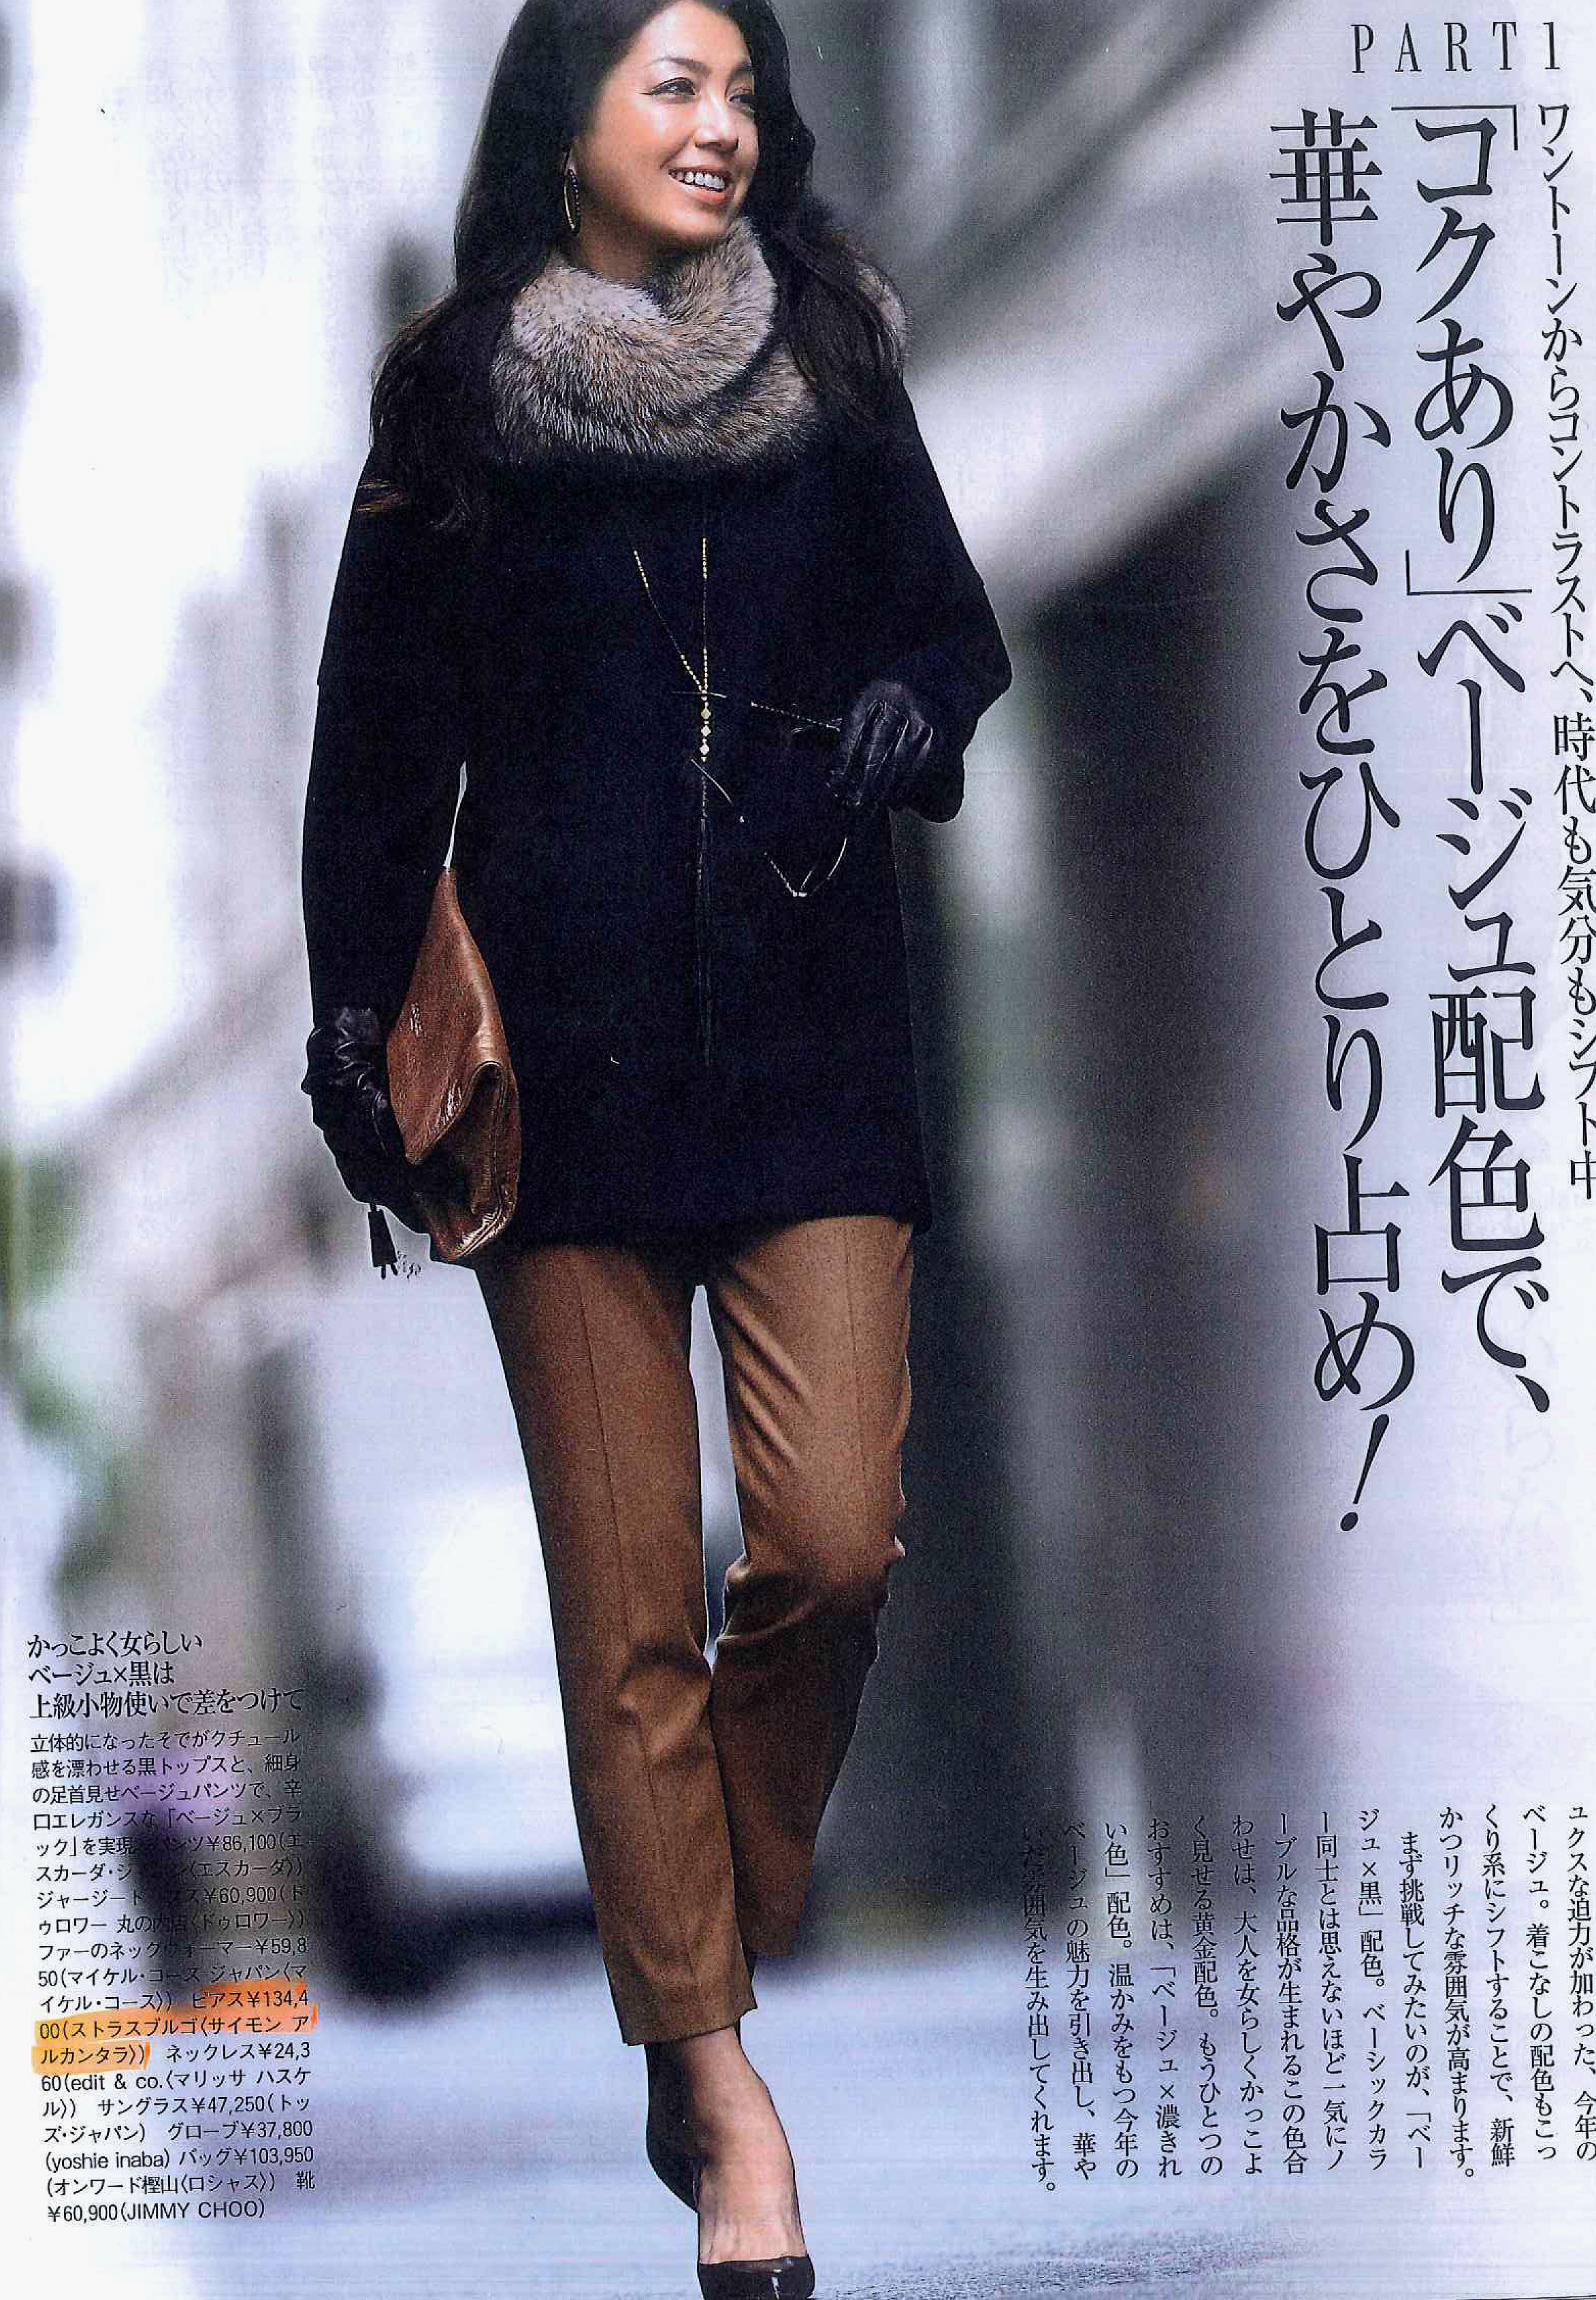 JAPAN- PRECIOUS MAGAZINE DECEMBER 2012 ISSUE. GOLD AND ONYX HAND WOVEN HOOPS.